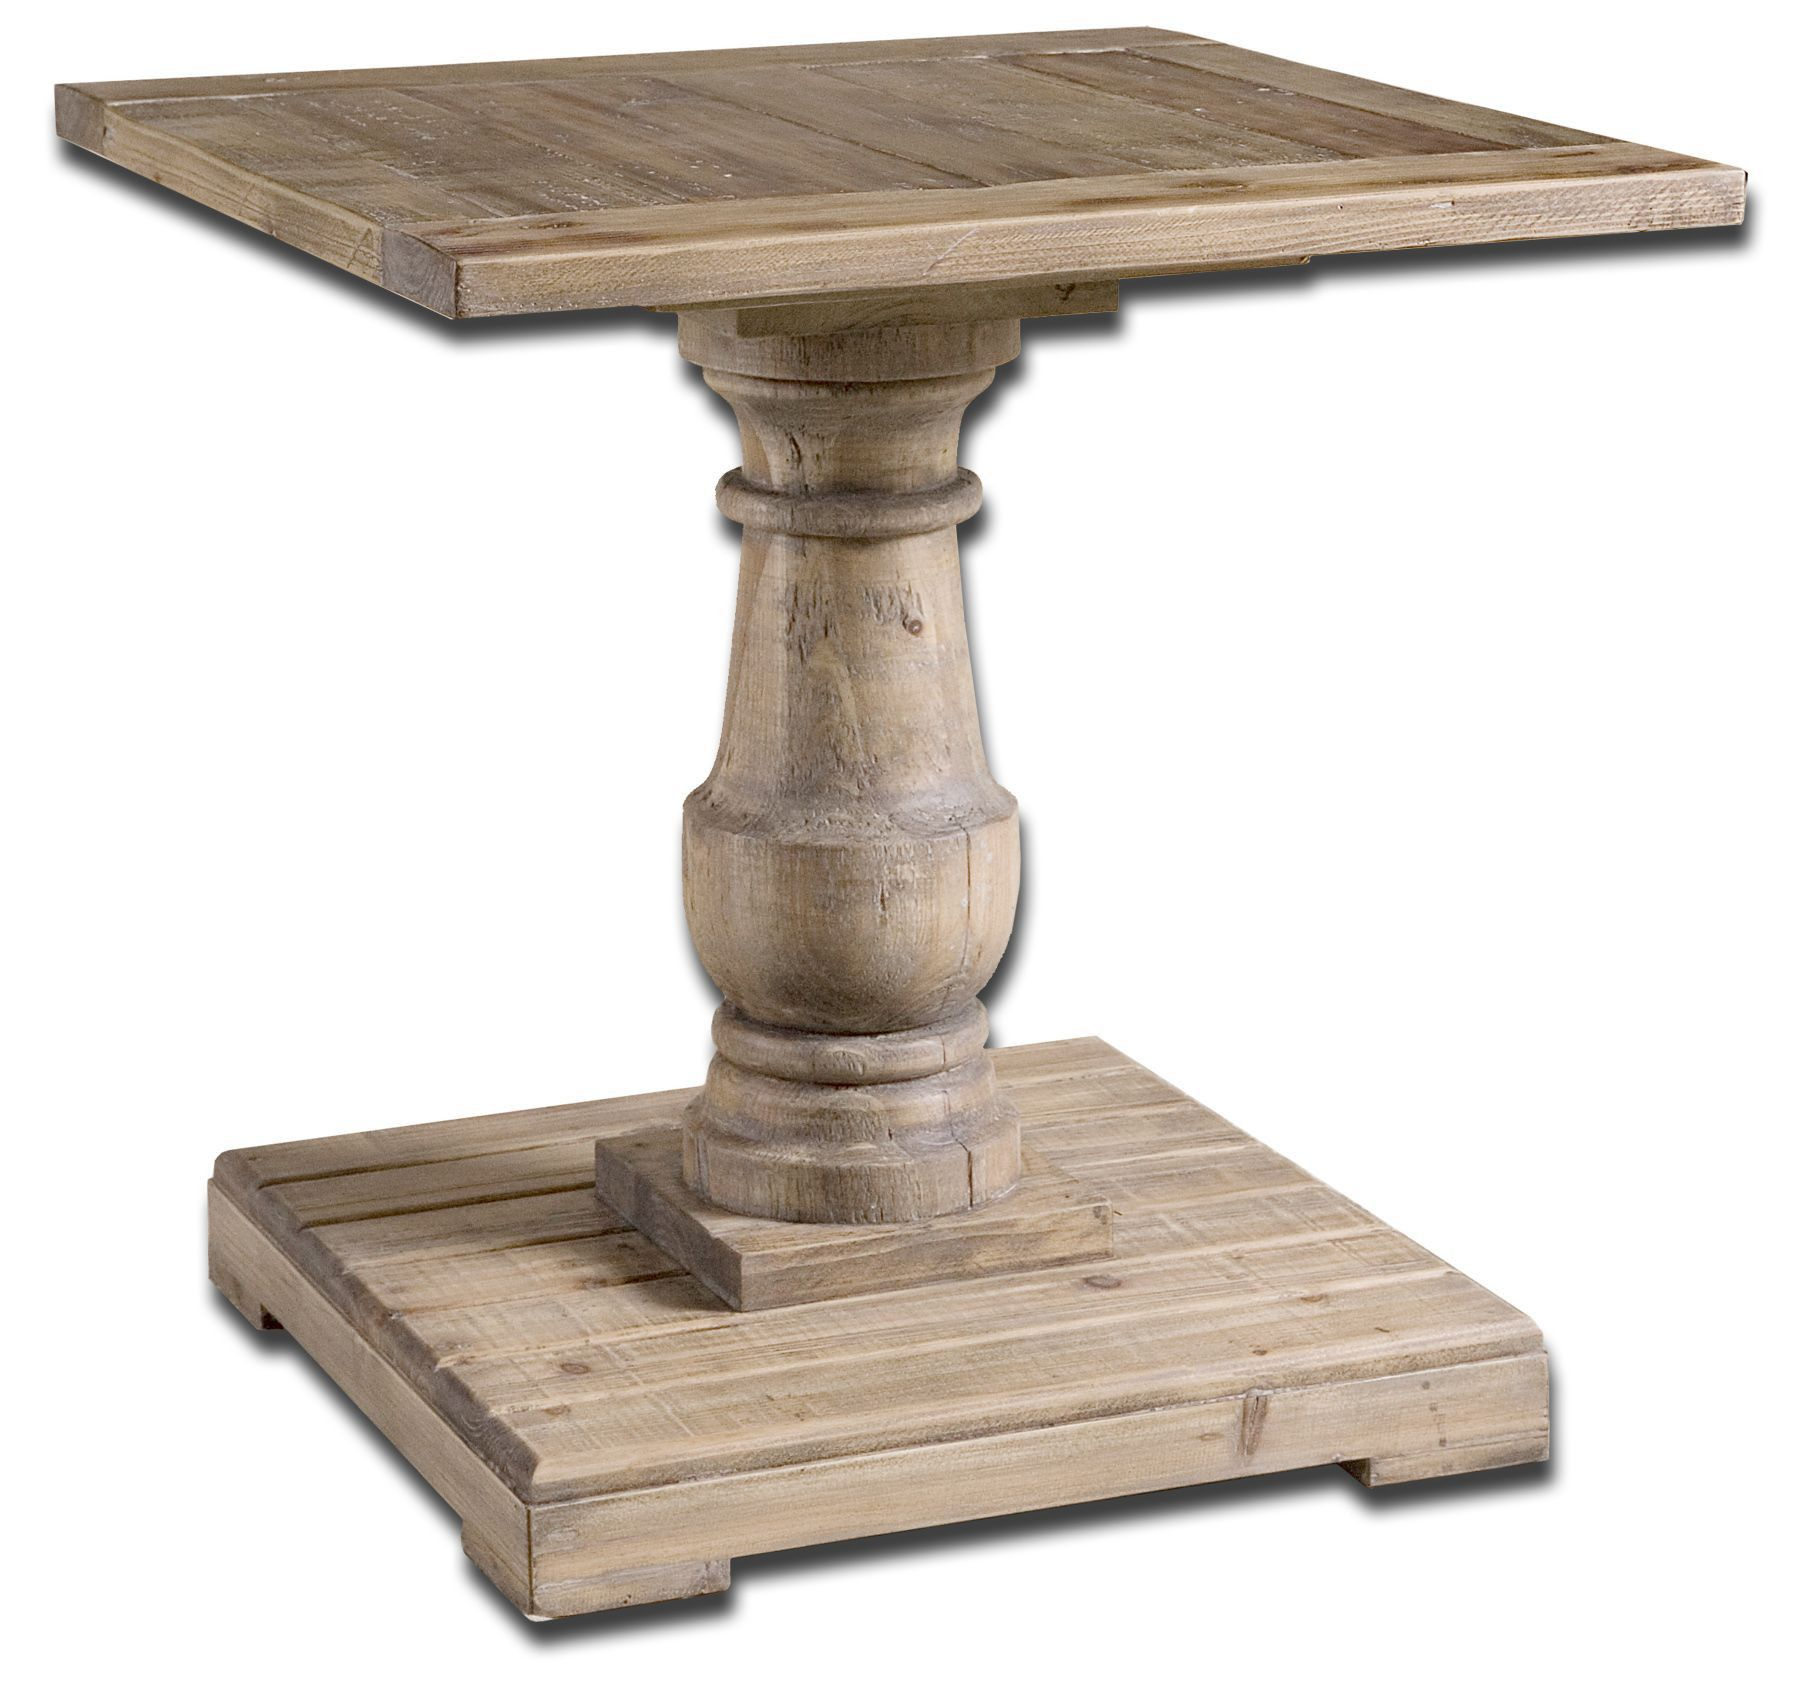 Stratford Pedestal End Table by Uttermost